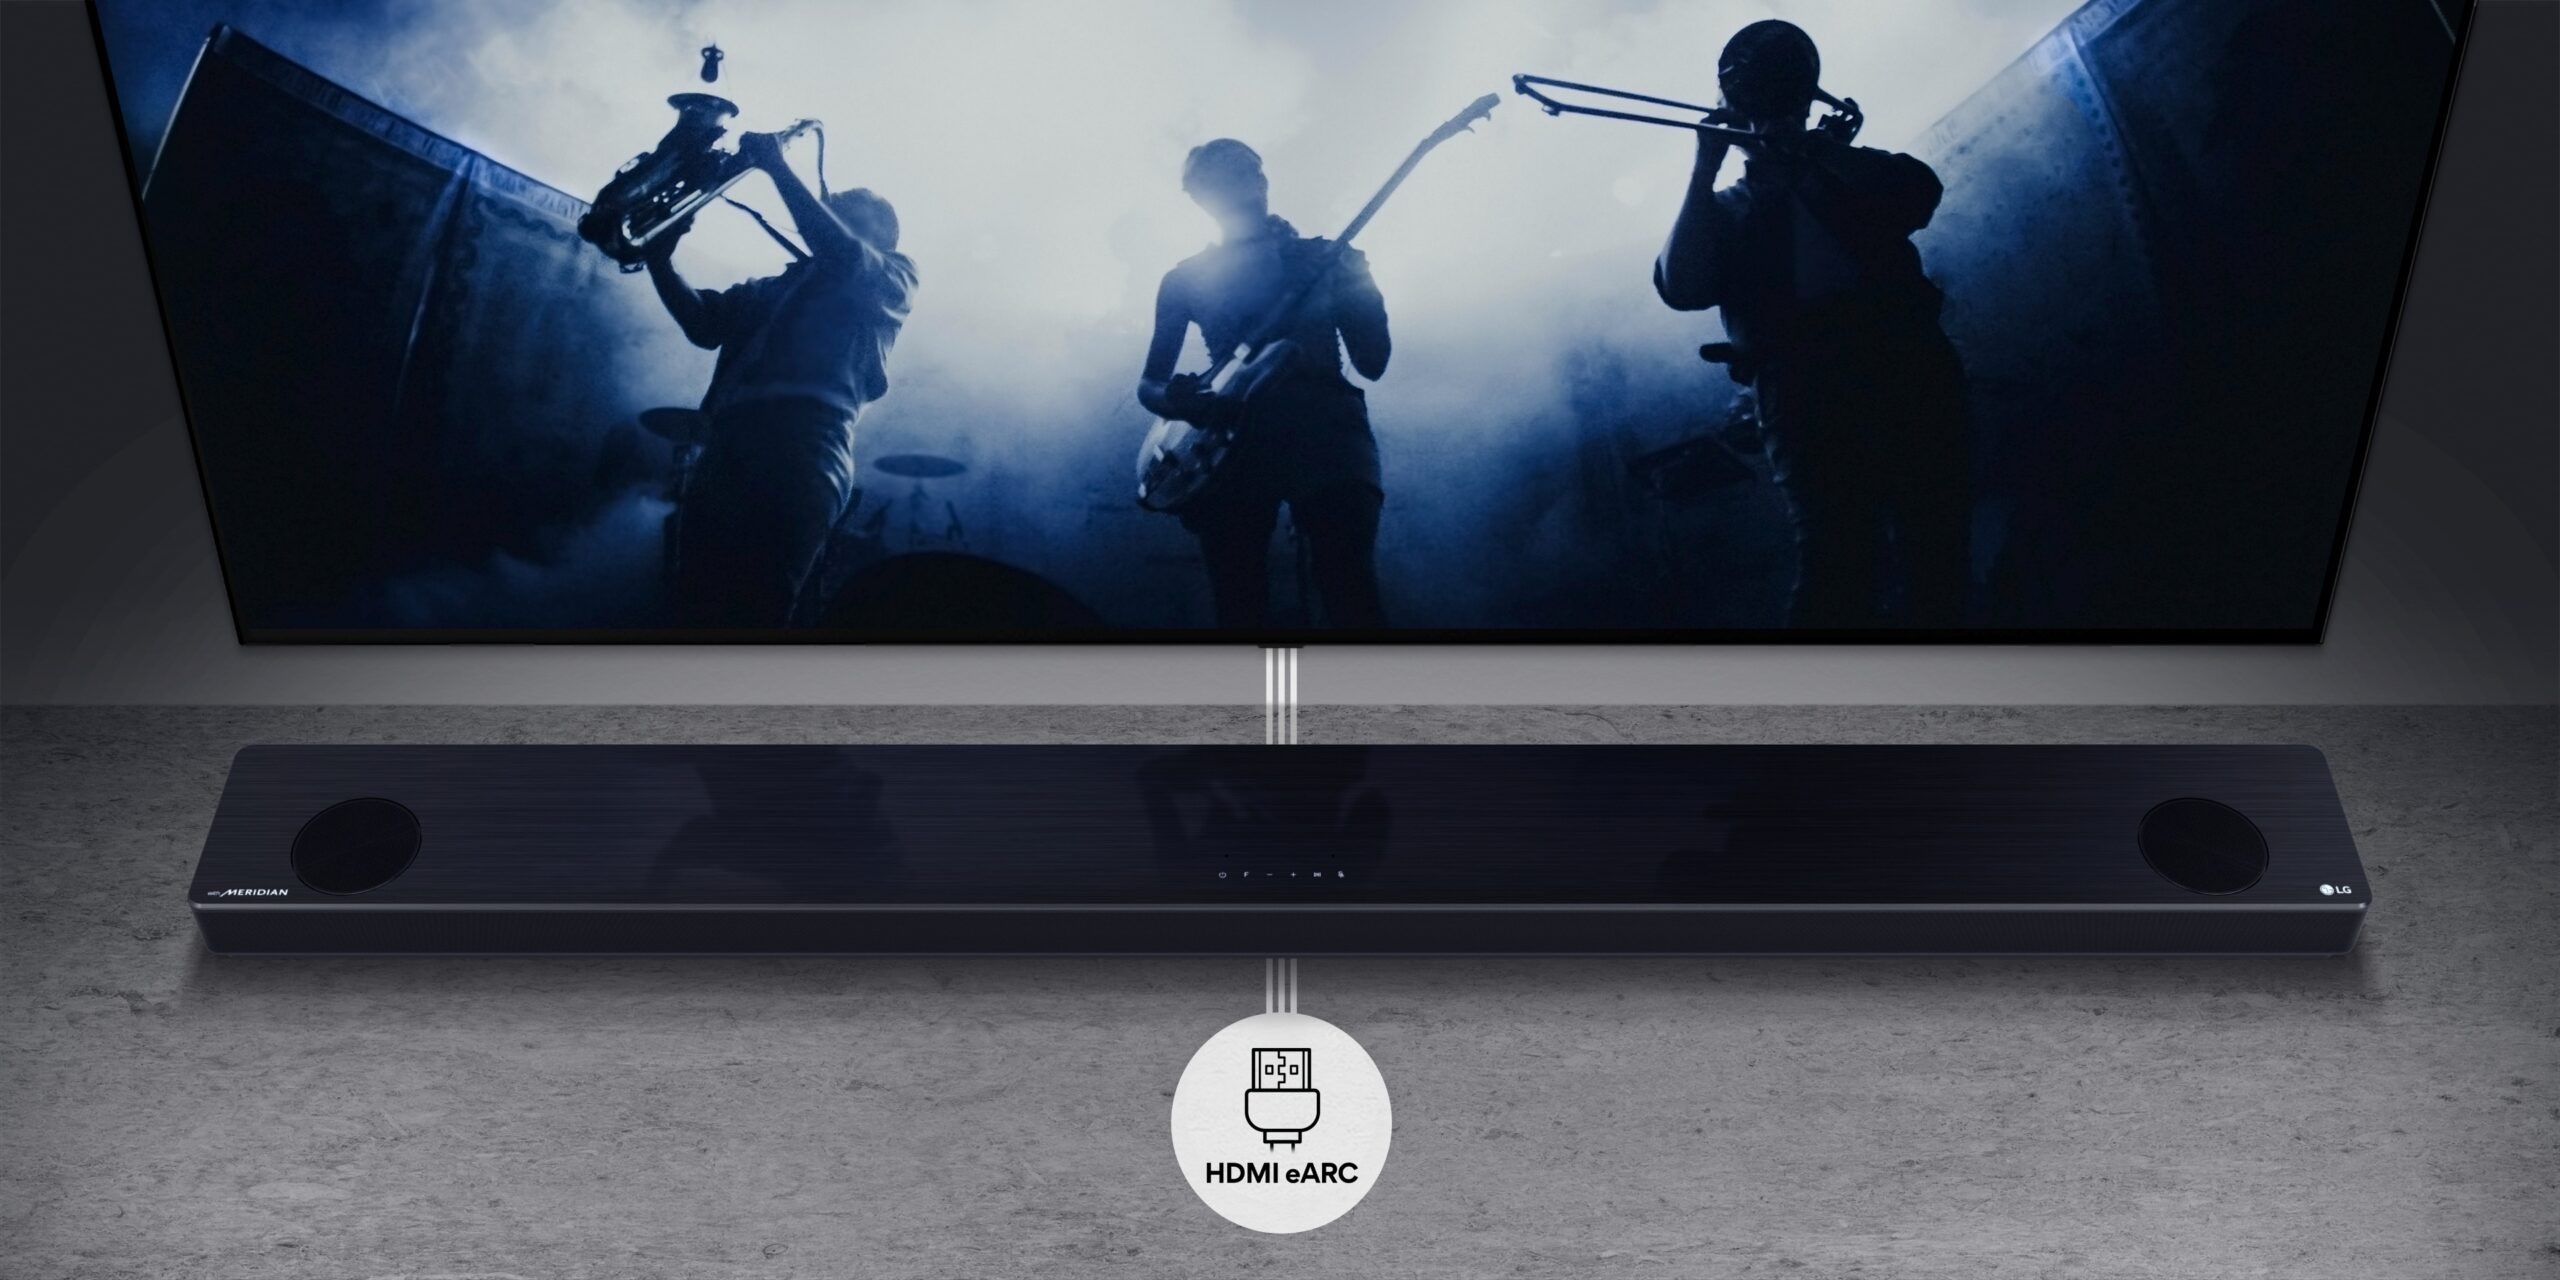 A promotional image showing LG's 2021 soundbar with AirPlay 2 support